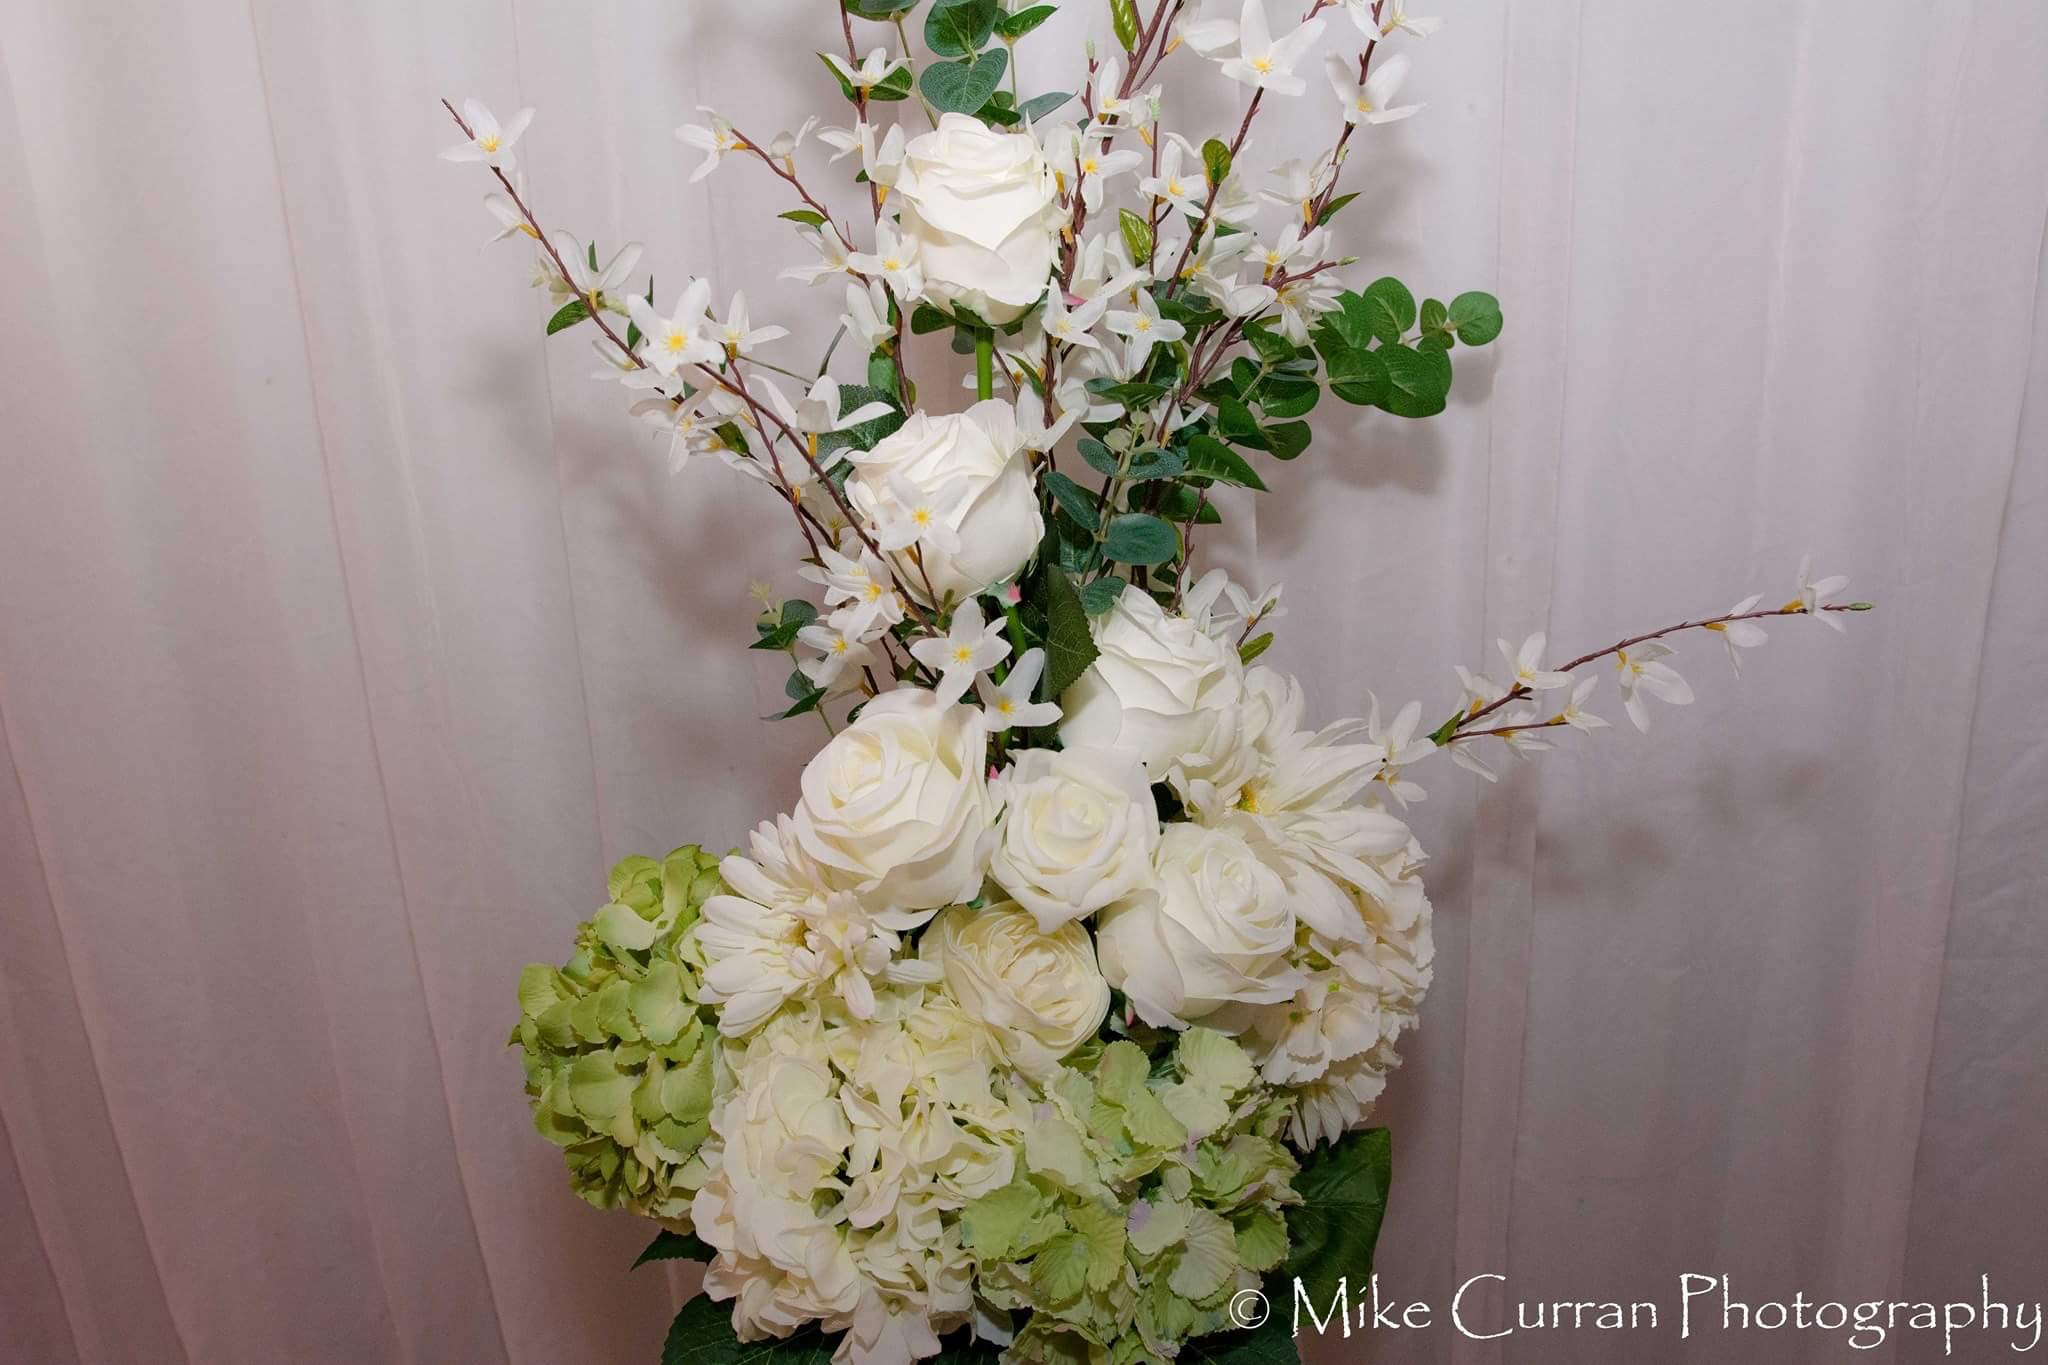 Floral Arrangment 2